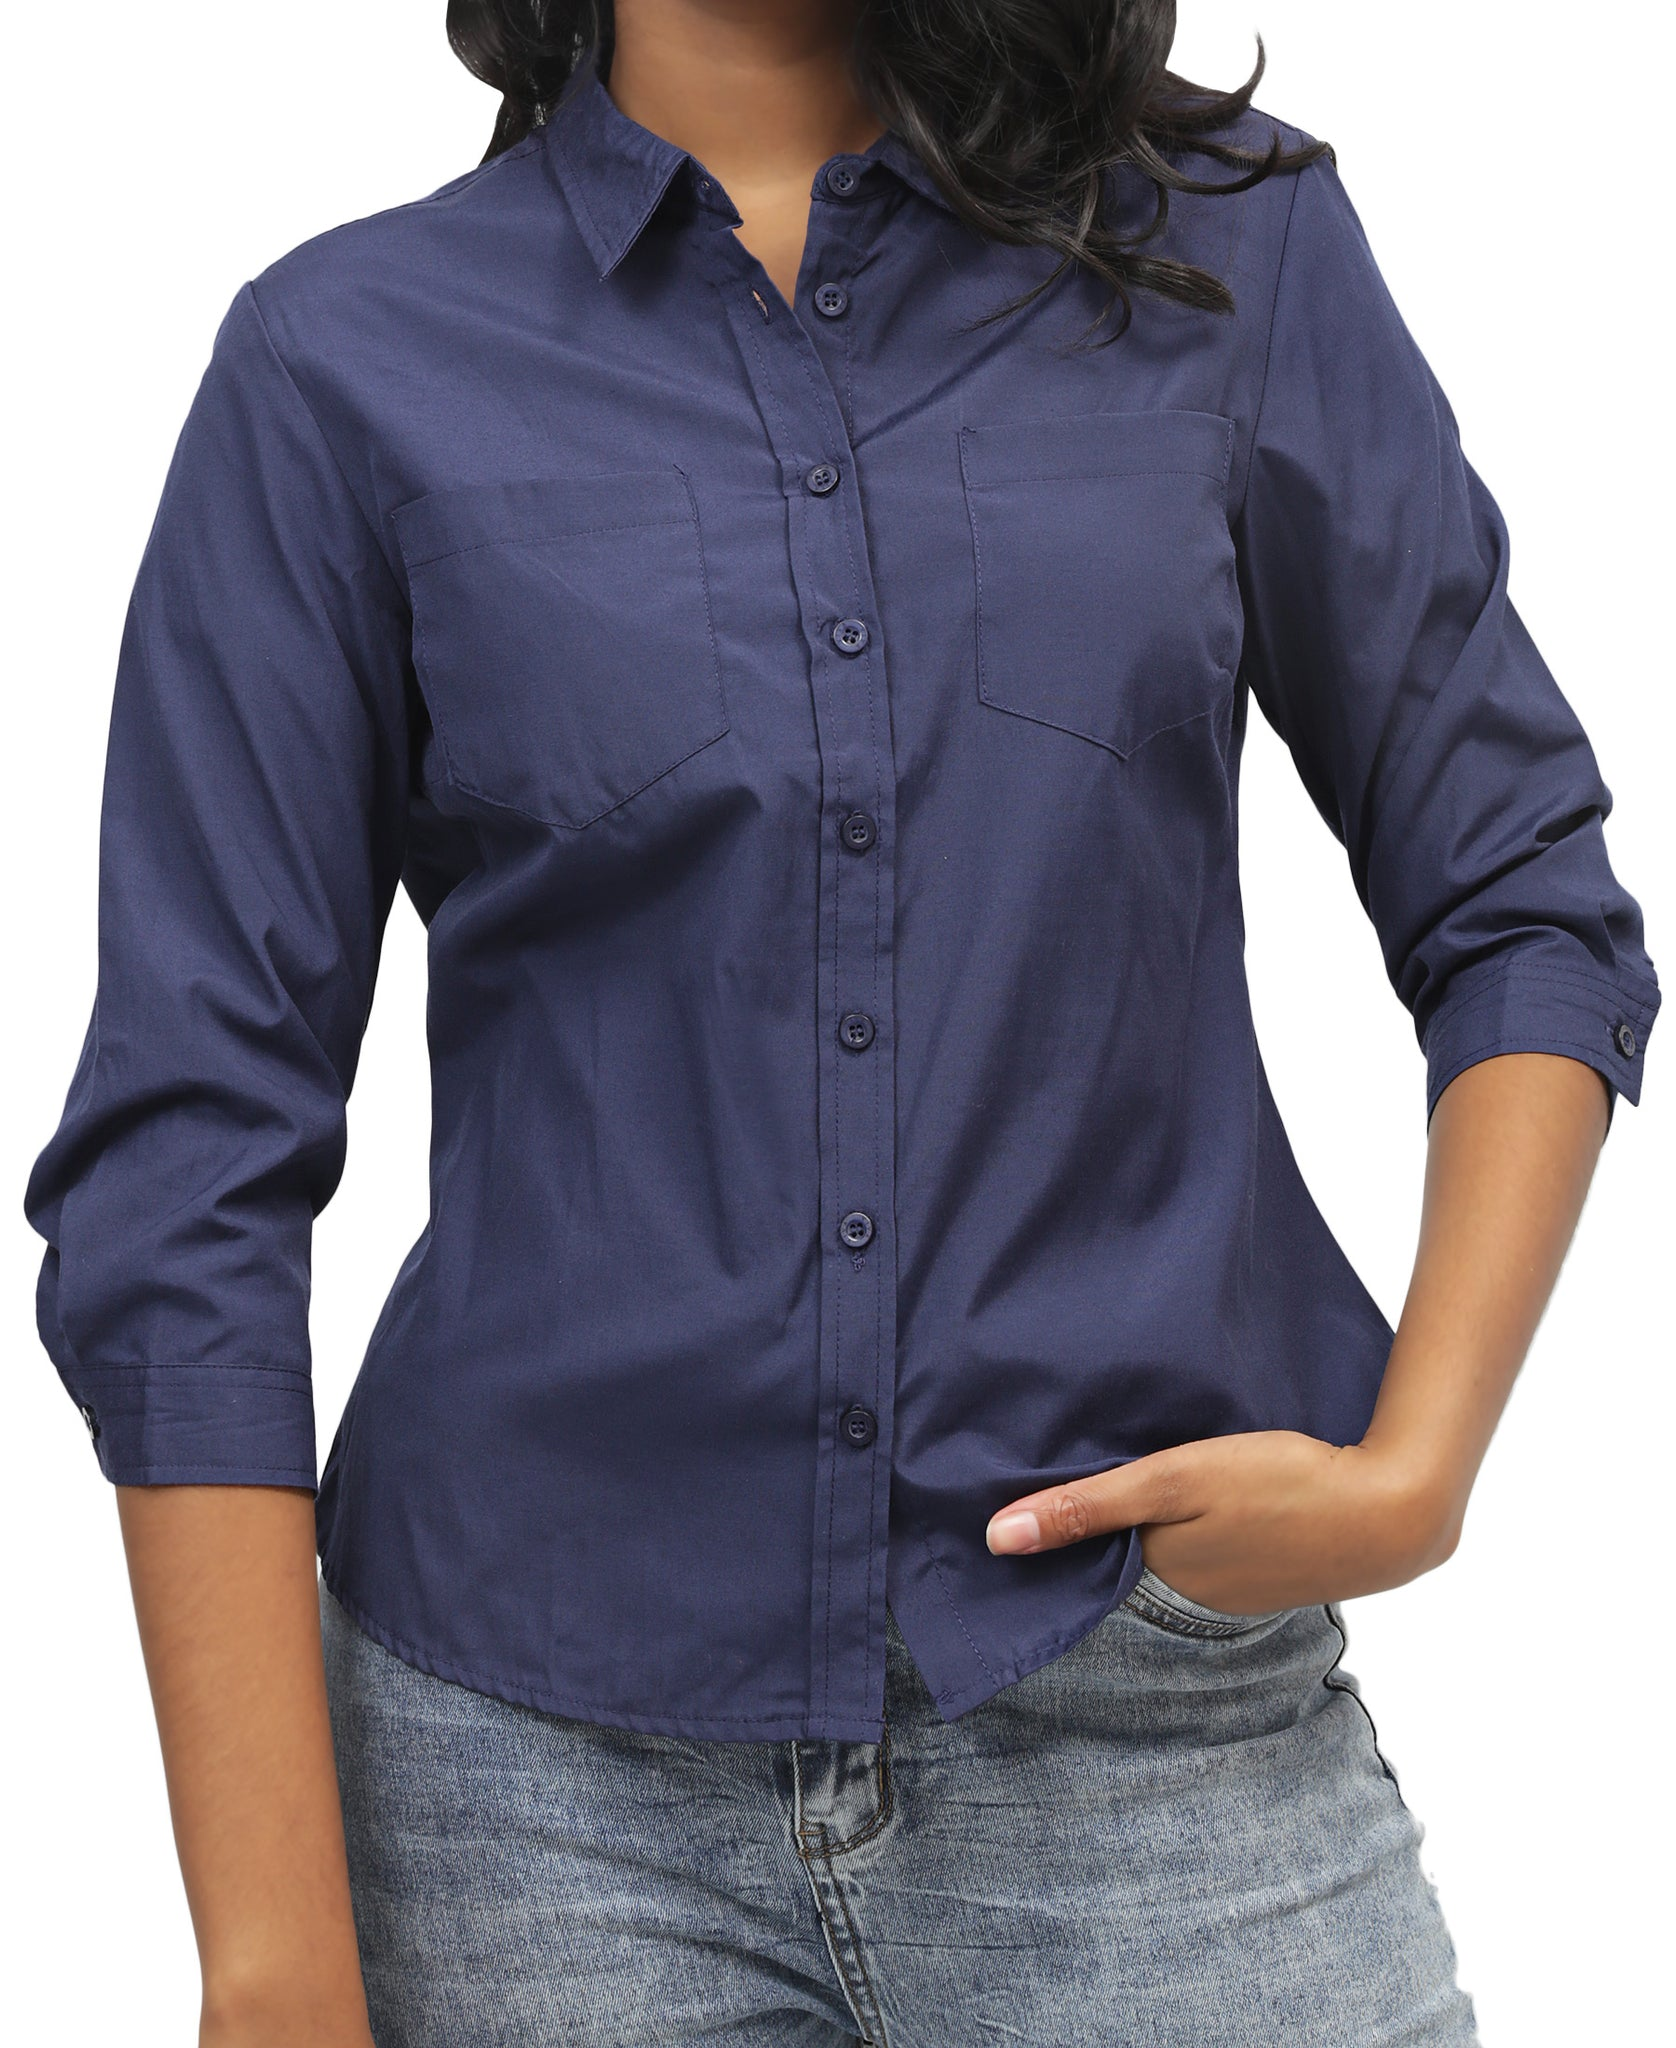 Ladies' Shirt - Navy